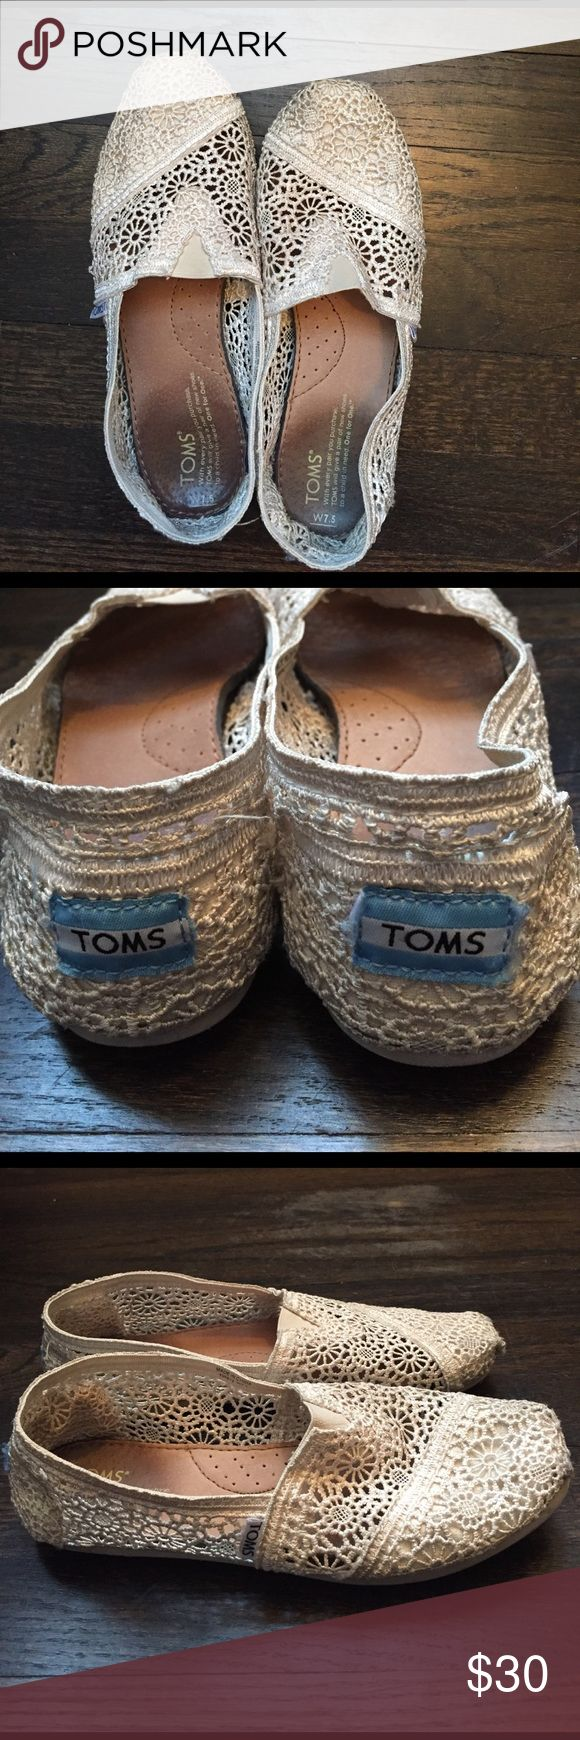 Lace Toms shoes Size 7.5 Good condition lace toms size 7.5. Fit true to size. Very comfy and pretty cream white color! Only wore a couple of times! TOMS Shoes Flats & Loafers